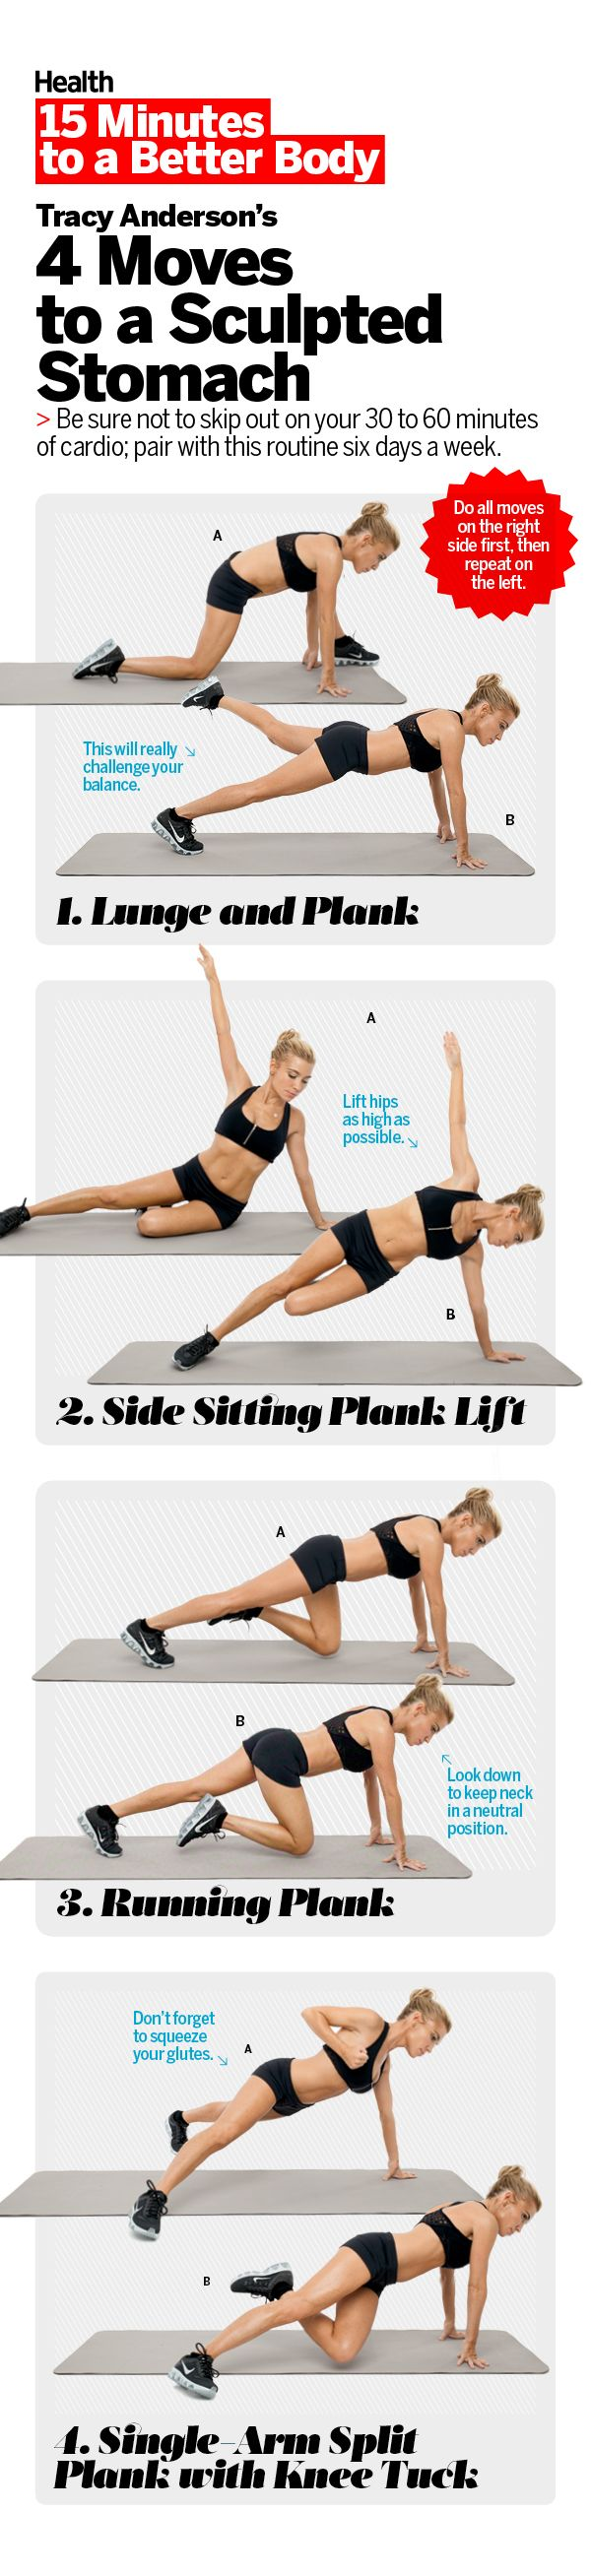 For a sculpted stomach, you'll need to work out every single muscle in your core. Celebrity trainer Tracy Anderson shows you how to do four powerful variations on the plank, designed to tighten and tone your middle. Do these moves six times a week, paired with 30 minutes of cardio, for major results. | Health.com